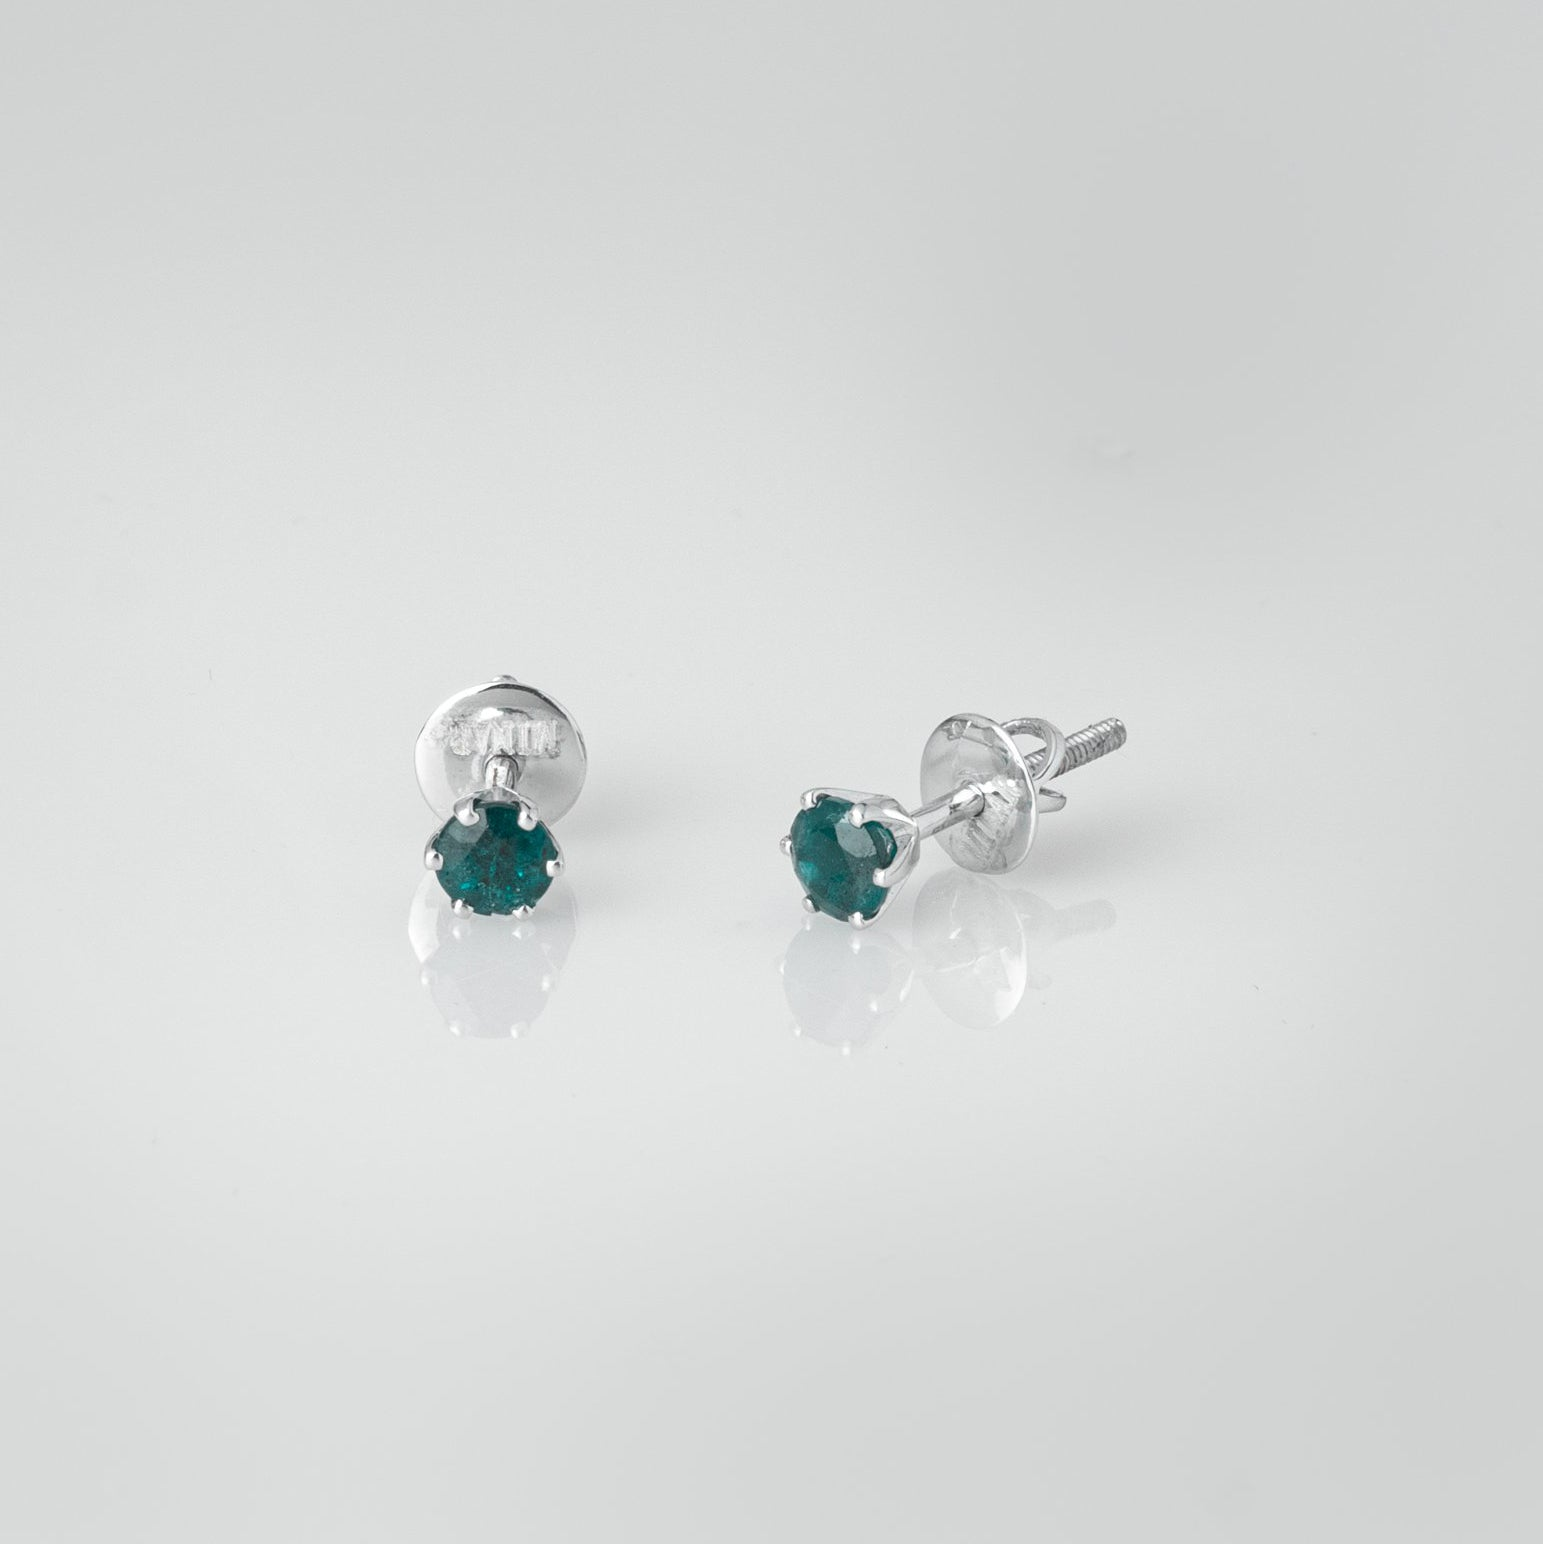 18ct White Gold 0.54ct Round Brilliant Cut Emerald Stud Earrings (MCS3121)